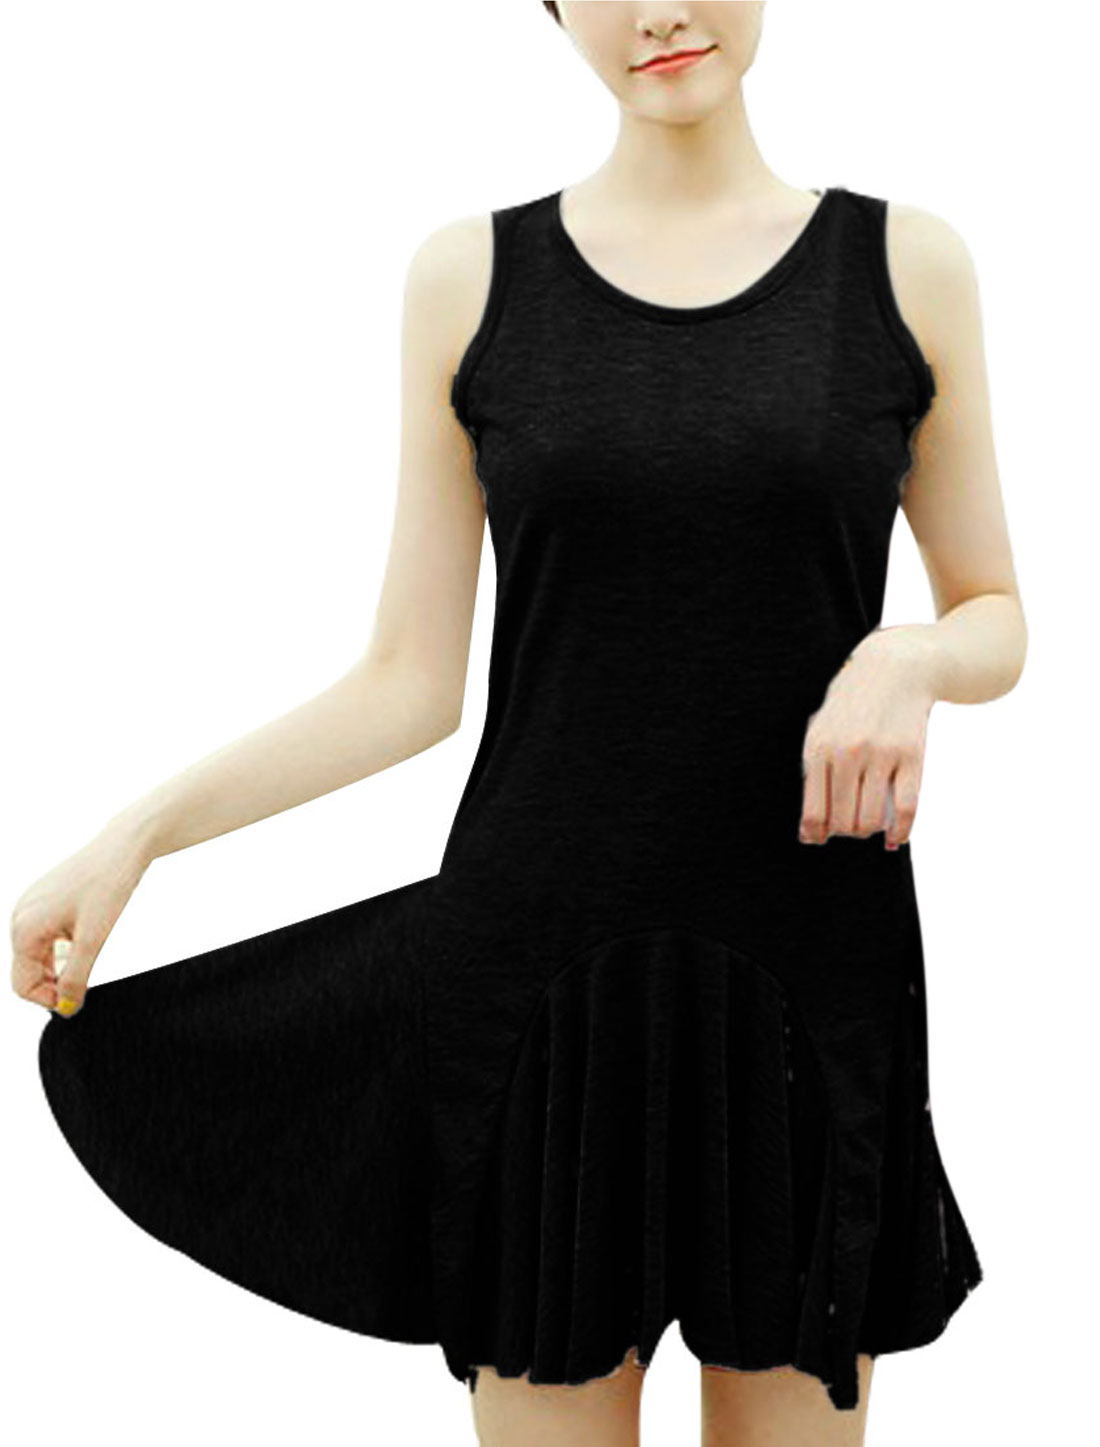 Ladies Round Neck Solid Color Stretchy Black Fit-and-Flare Mini Dress XS